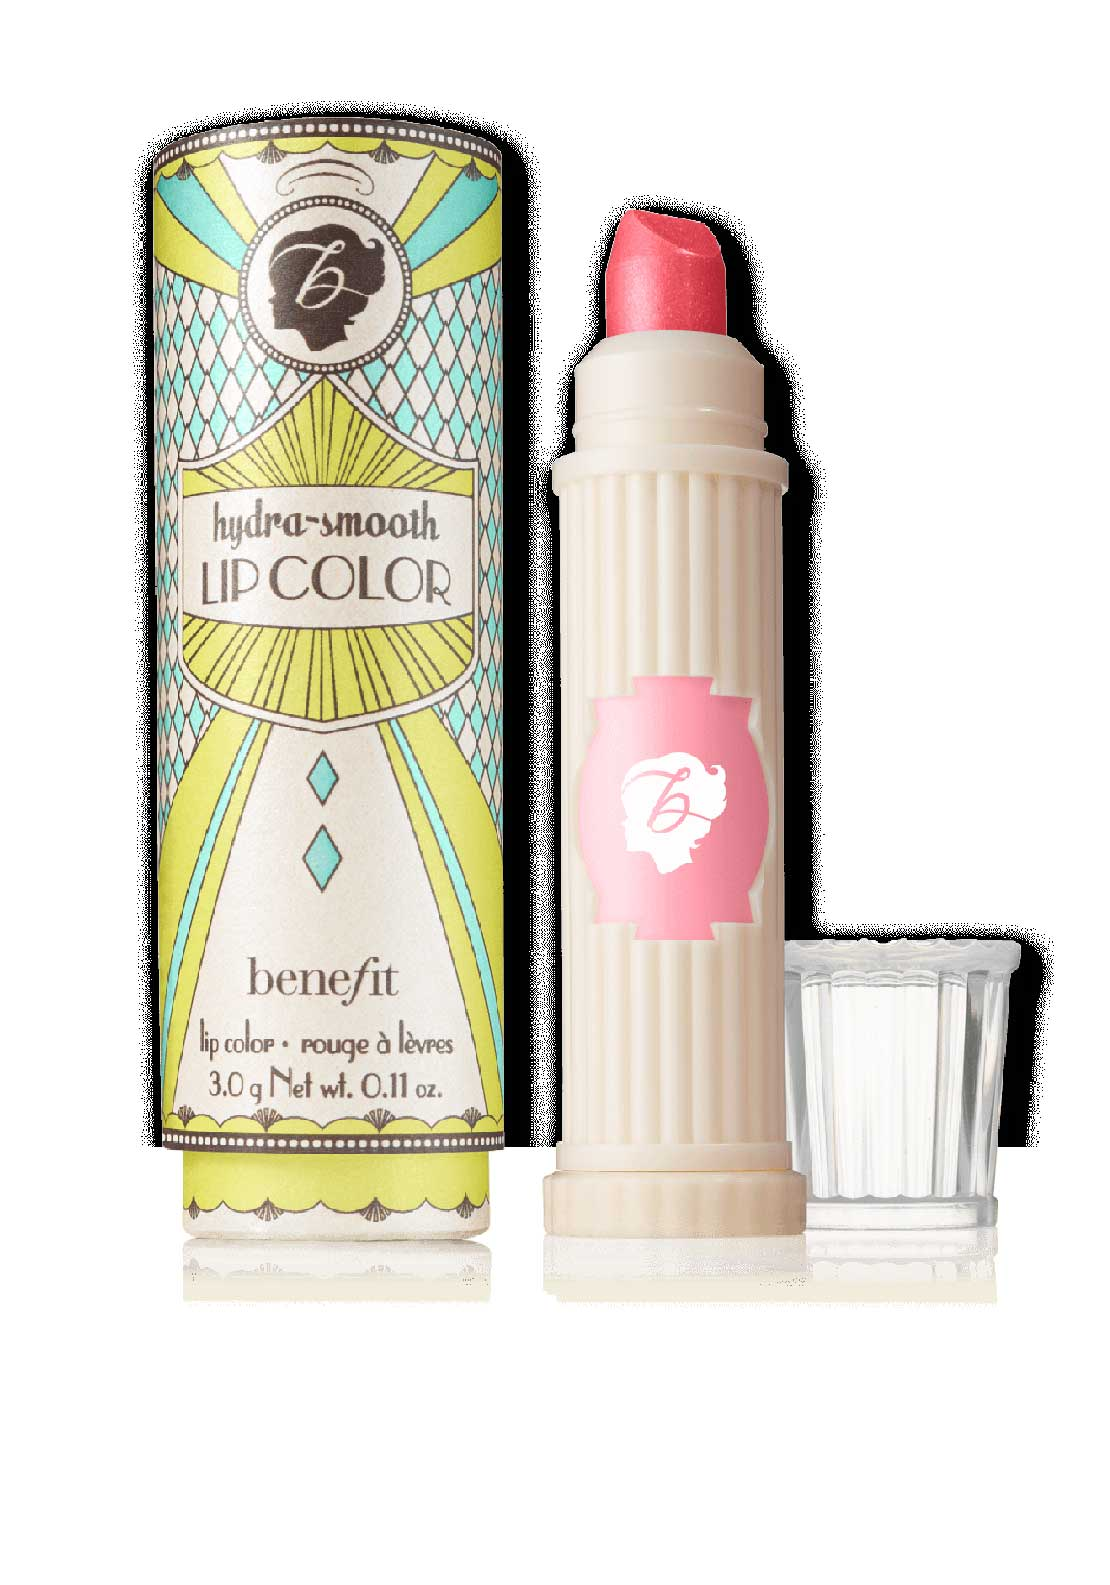 Benefit Hydra Smooth Kiss Service Lip Colour, Sheer Pink Peach